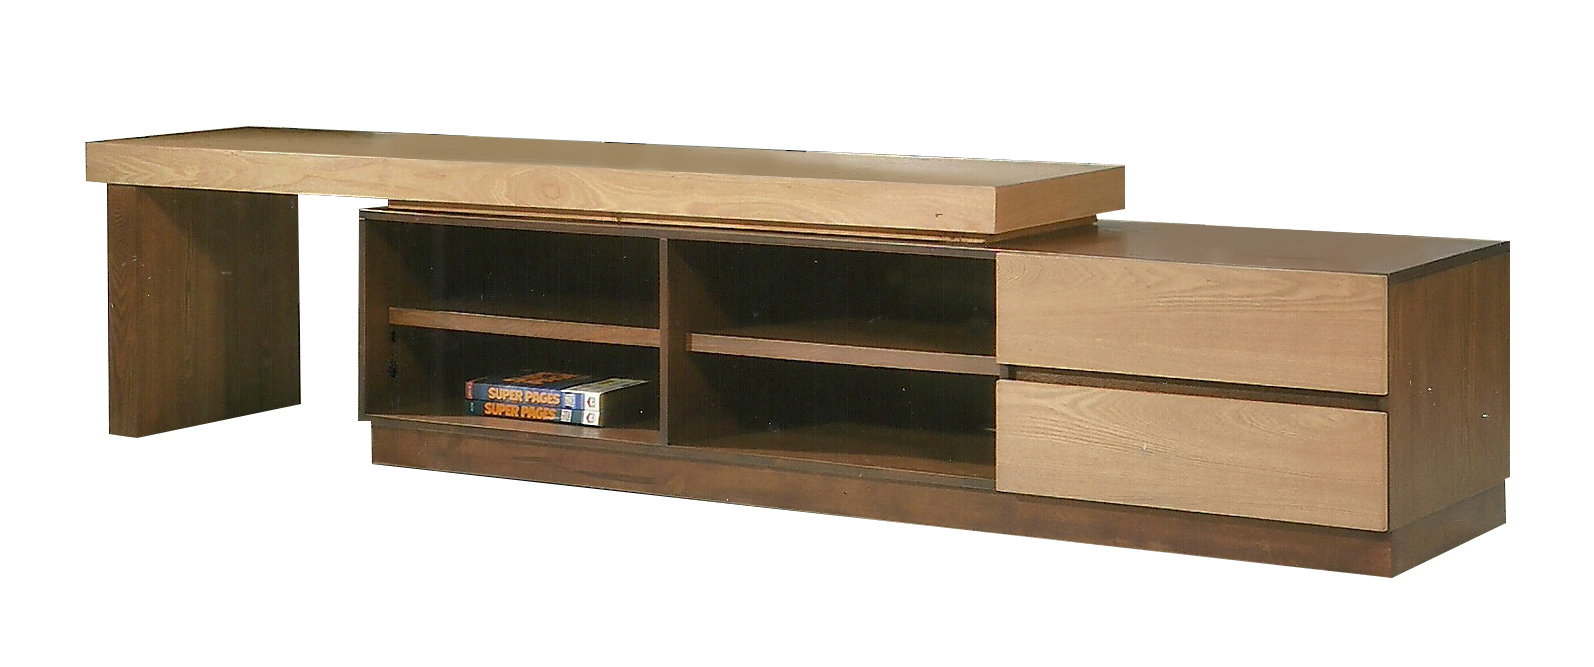 TV rack 10 80 ft double top a.jpg